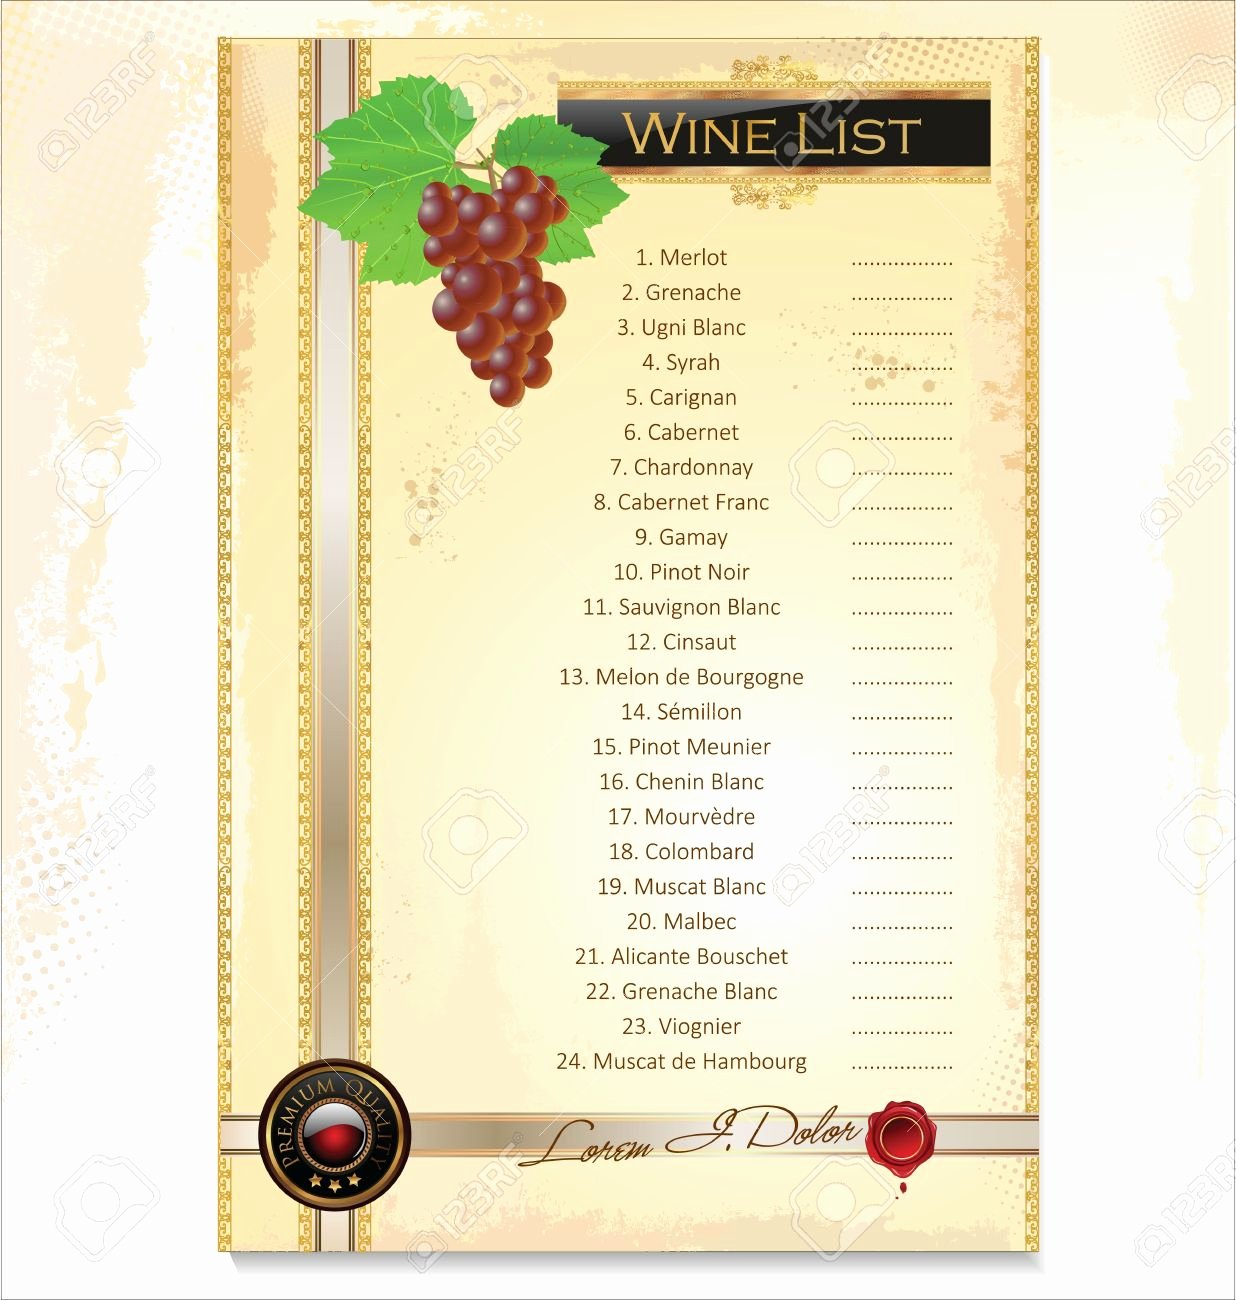 Wine Tasting Menu Template Beautiful Menu Wine Menu Template